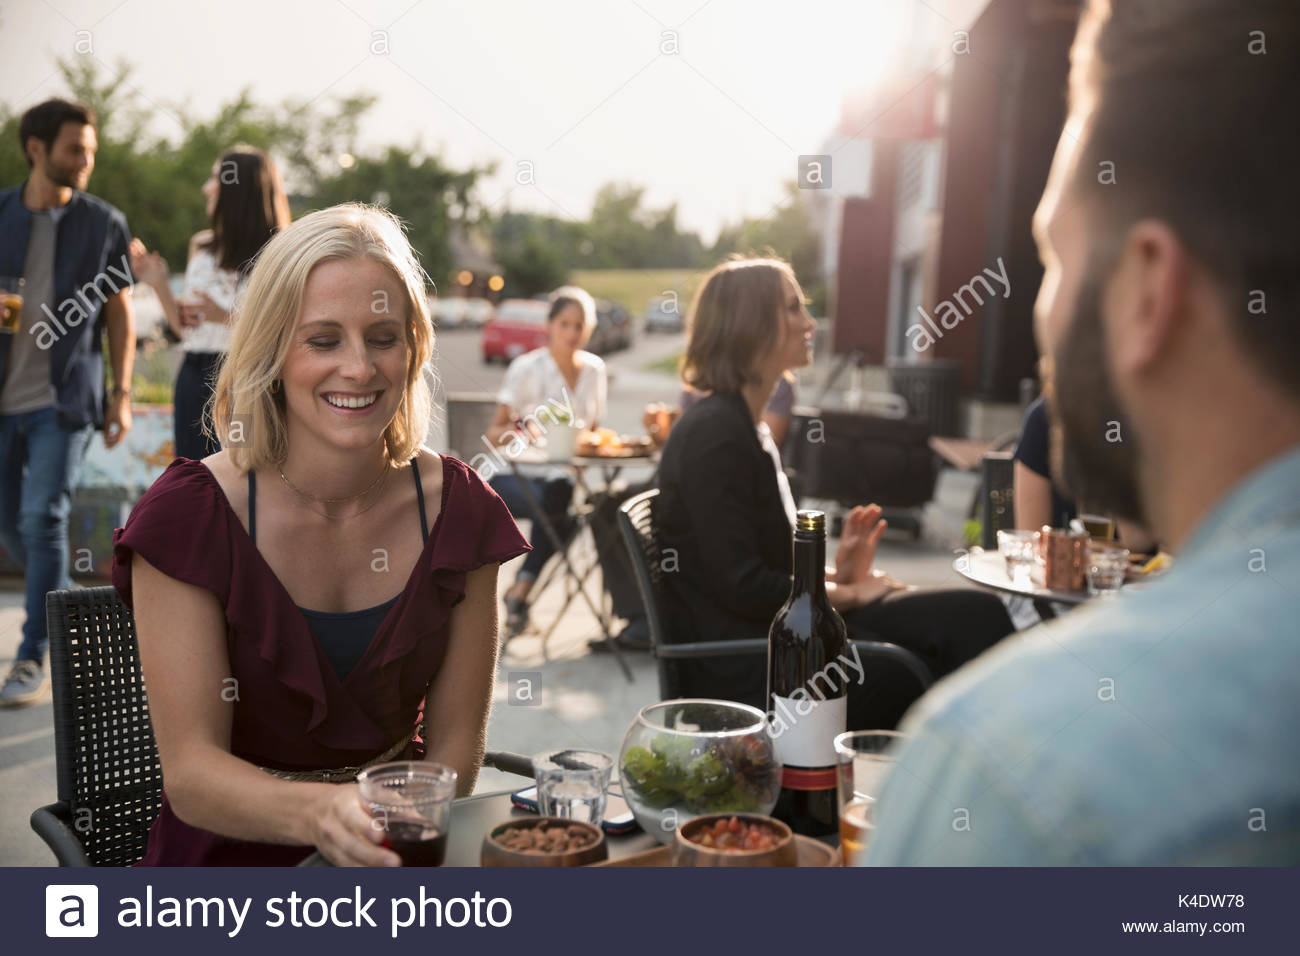 Smiling woman drinking wine with boyfriend at sidewalk cafe - Stock Image